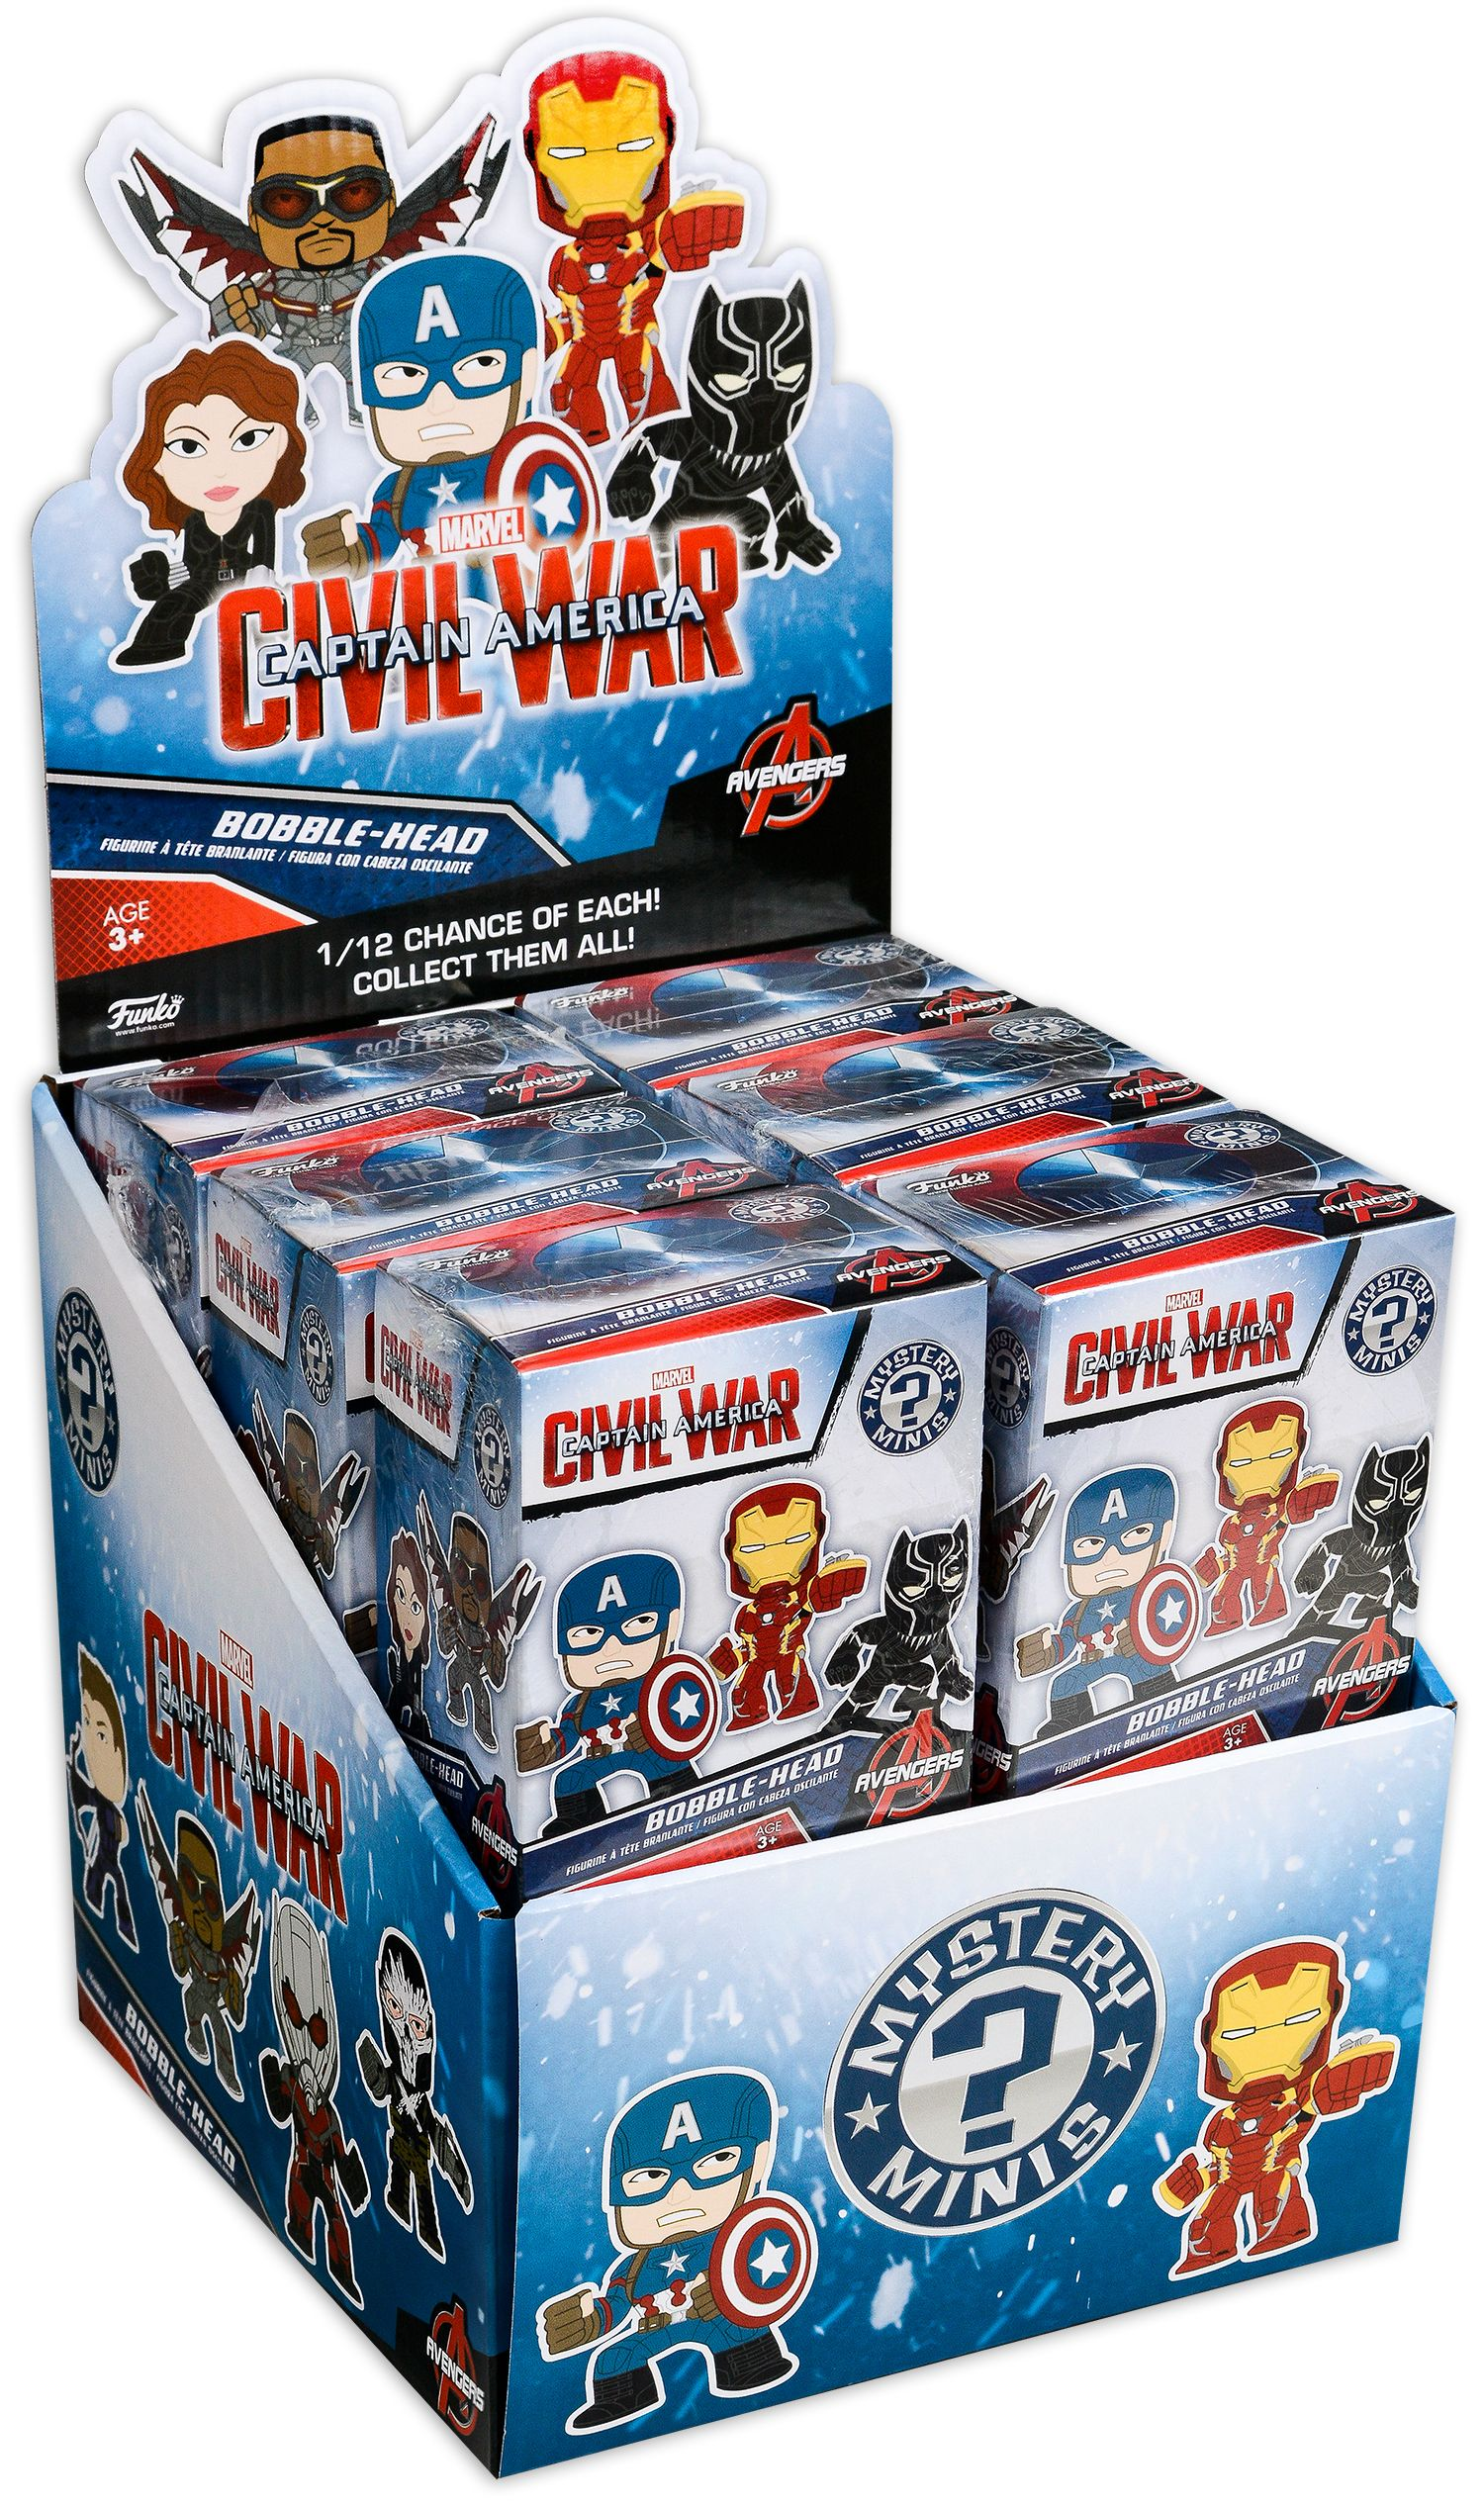 Мини Фигура Funko: Cap America 3: Civil War - Mystery Minis Blind Box - 3